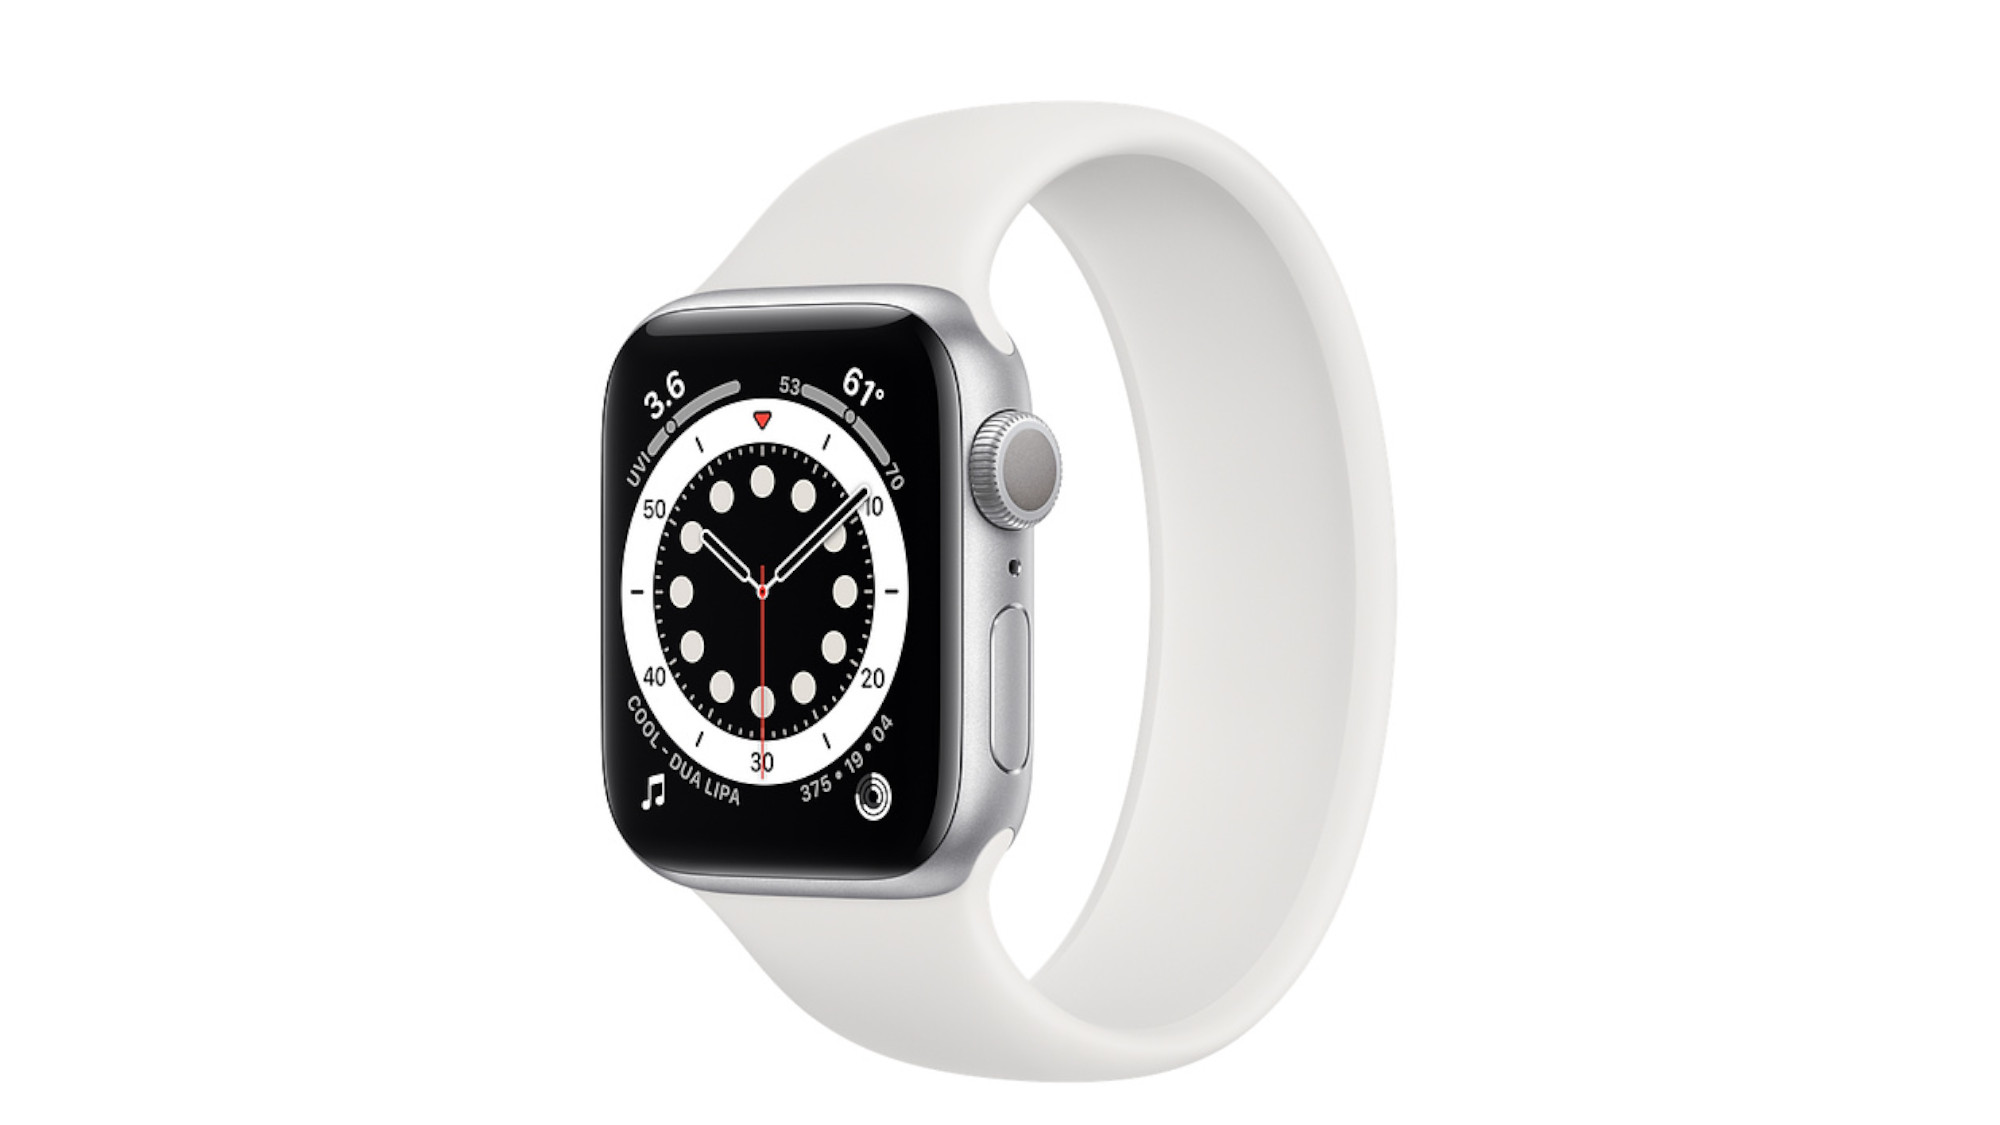 apple watch deals: Series 6